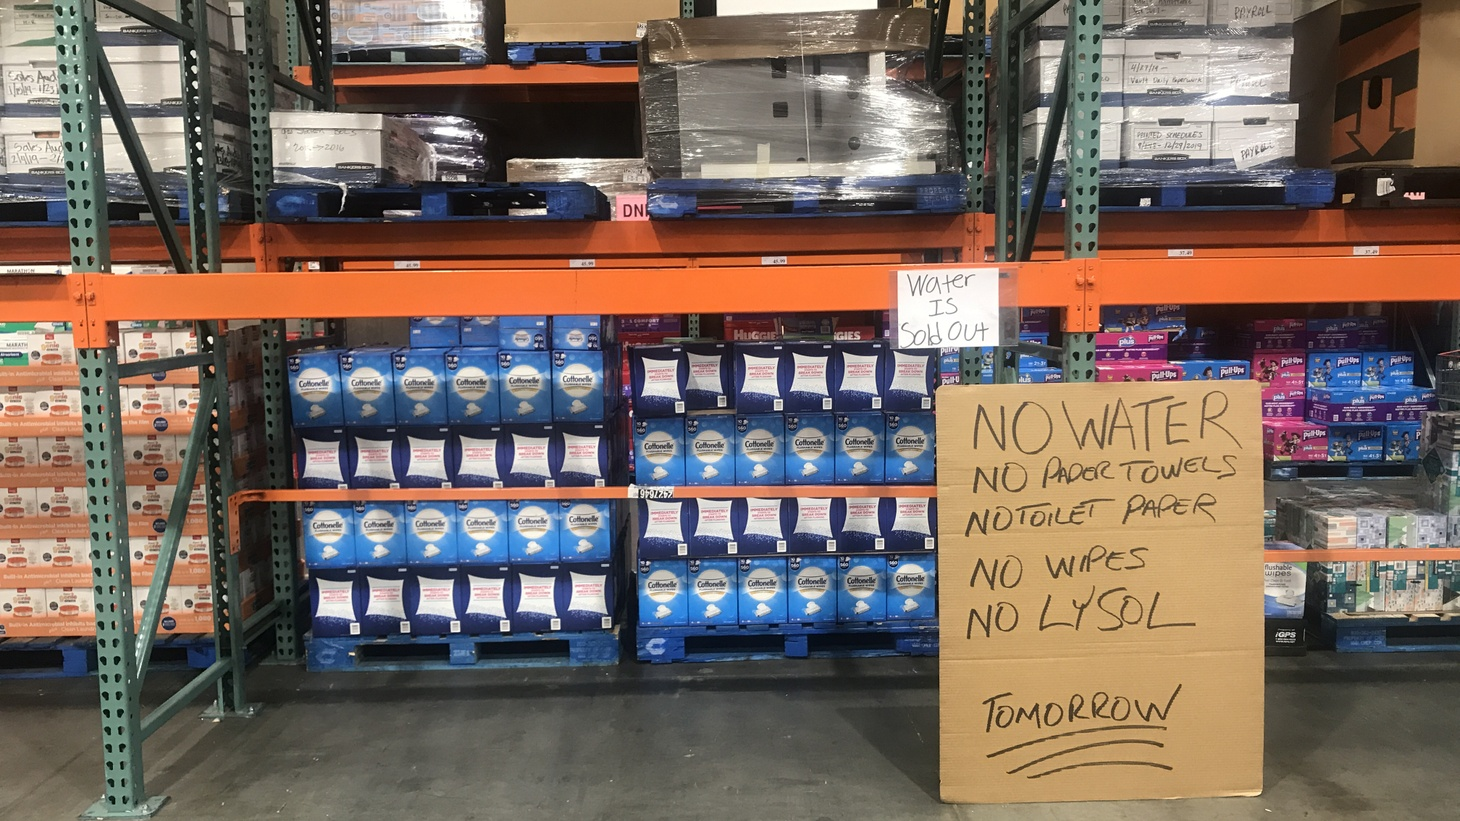 A Costco store in Van Nuys/Sherman Oaks sold out of bottled water, paper towels, toilet paper and disinfecting wipes, among other products.